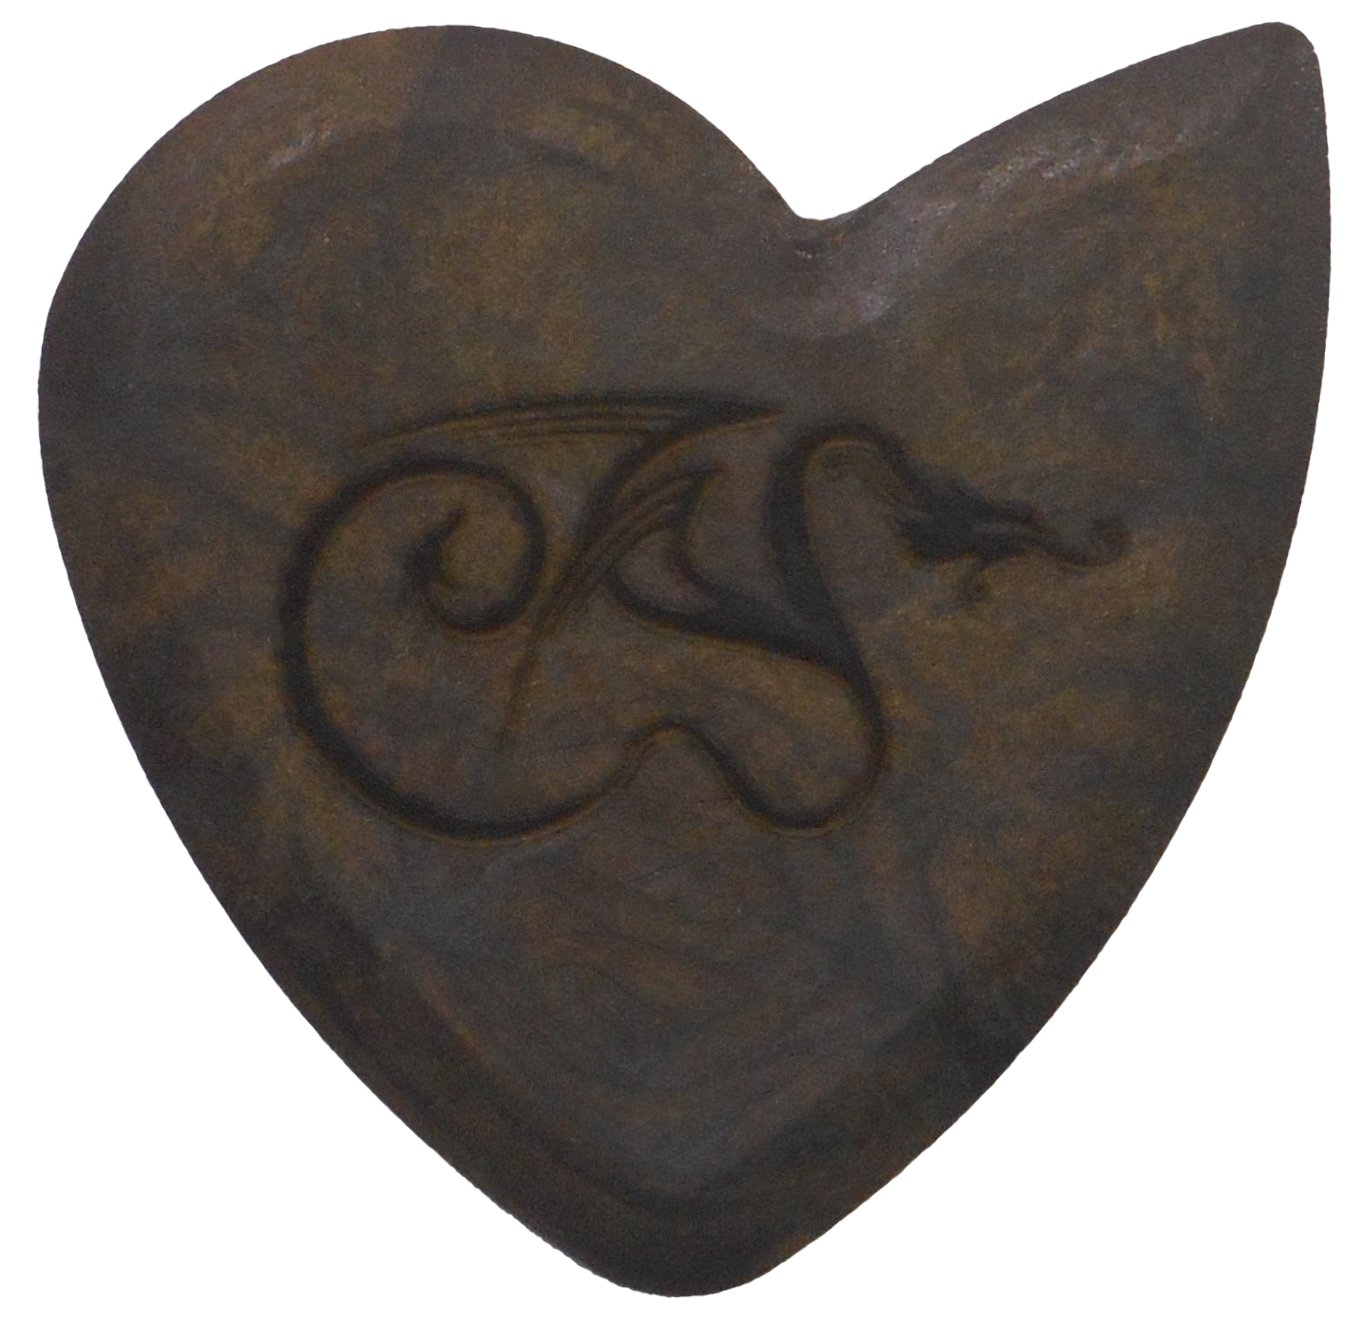 Hardened Dragon's Heart Guitar Pick - 1500 Hours of Durability, 2.5mm Thickness, Single Pack